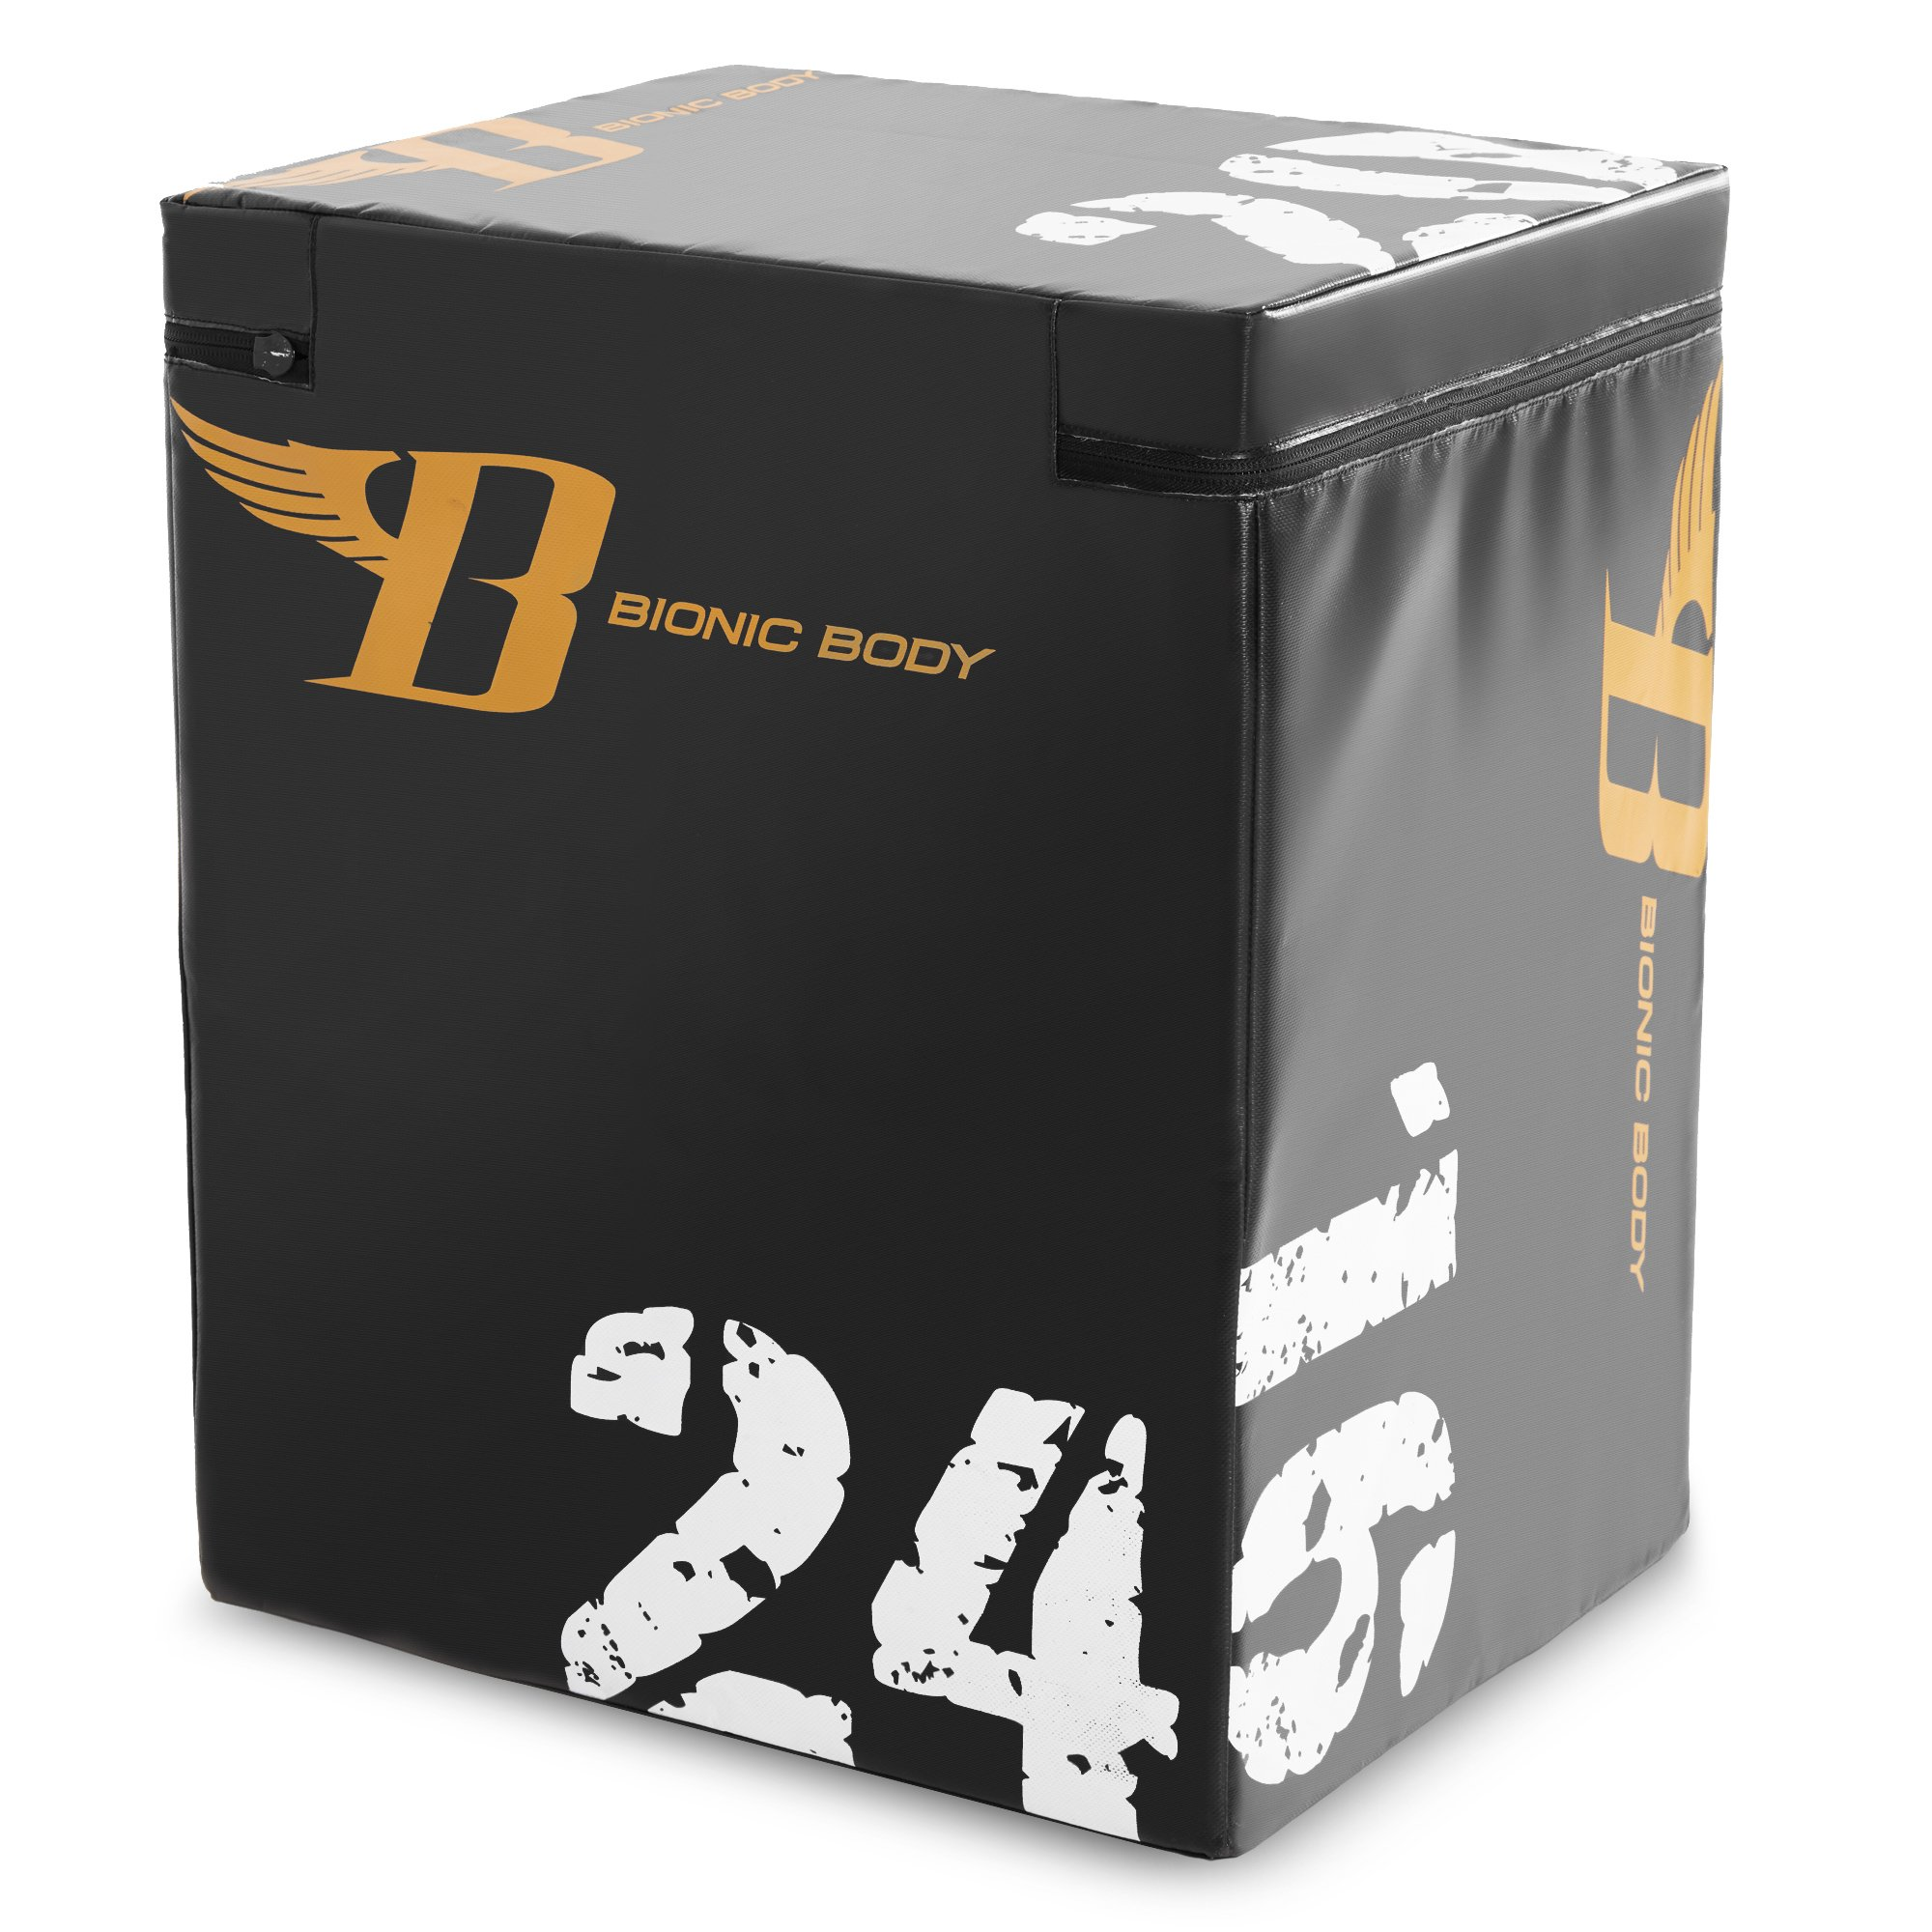 Bionic Body Plyo Exercise Box with Soft Cover BBPB-1106 – 16/20/24in Height Gym Training Accessory